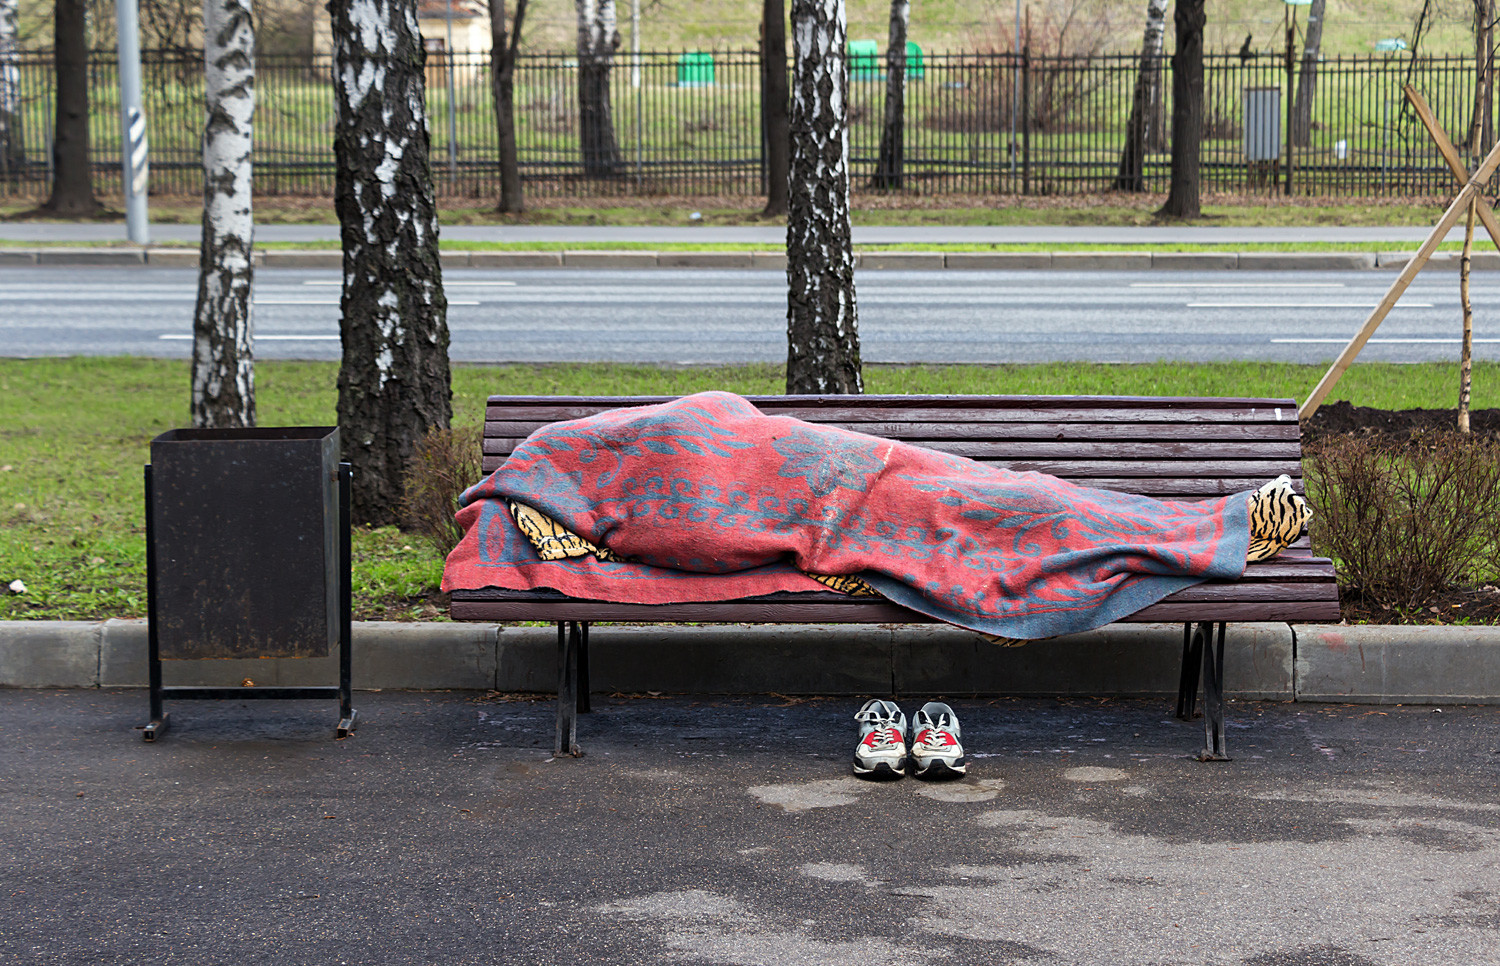 A homeless person sleeping on a bench near Sparrow Hills, Moscow.